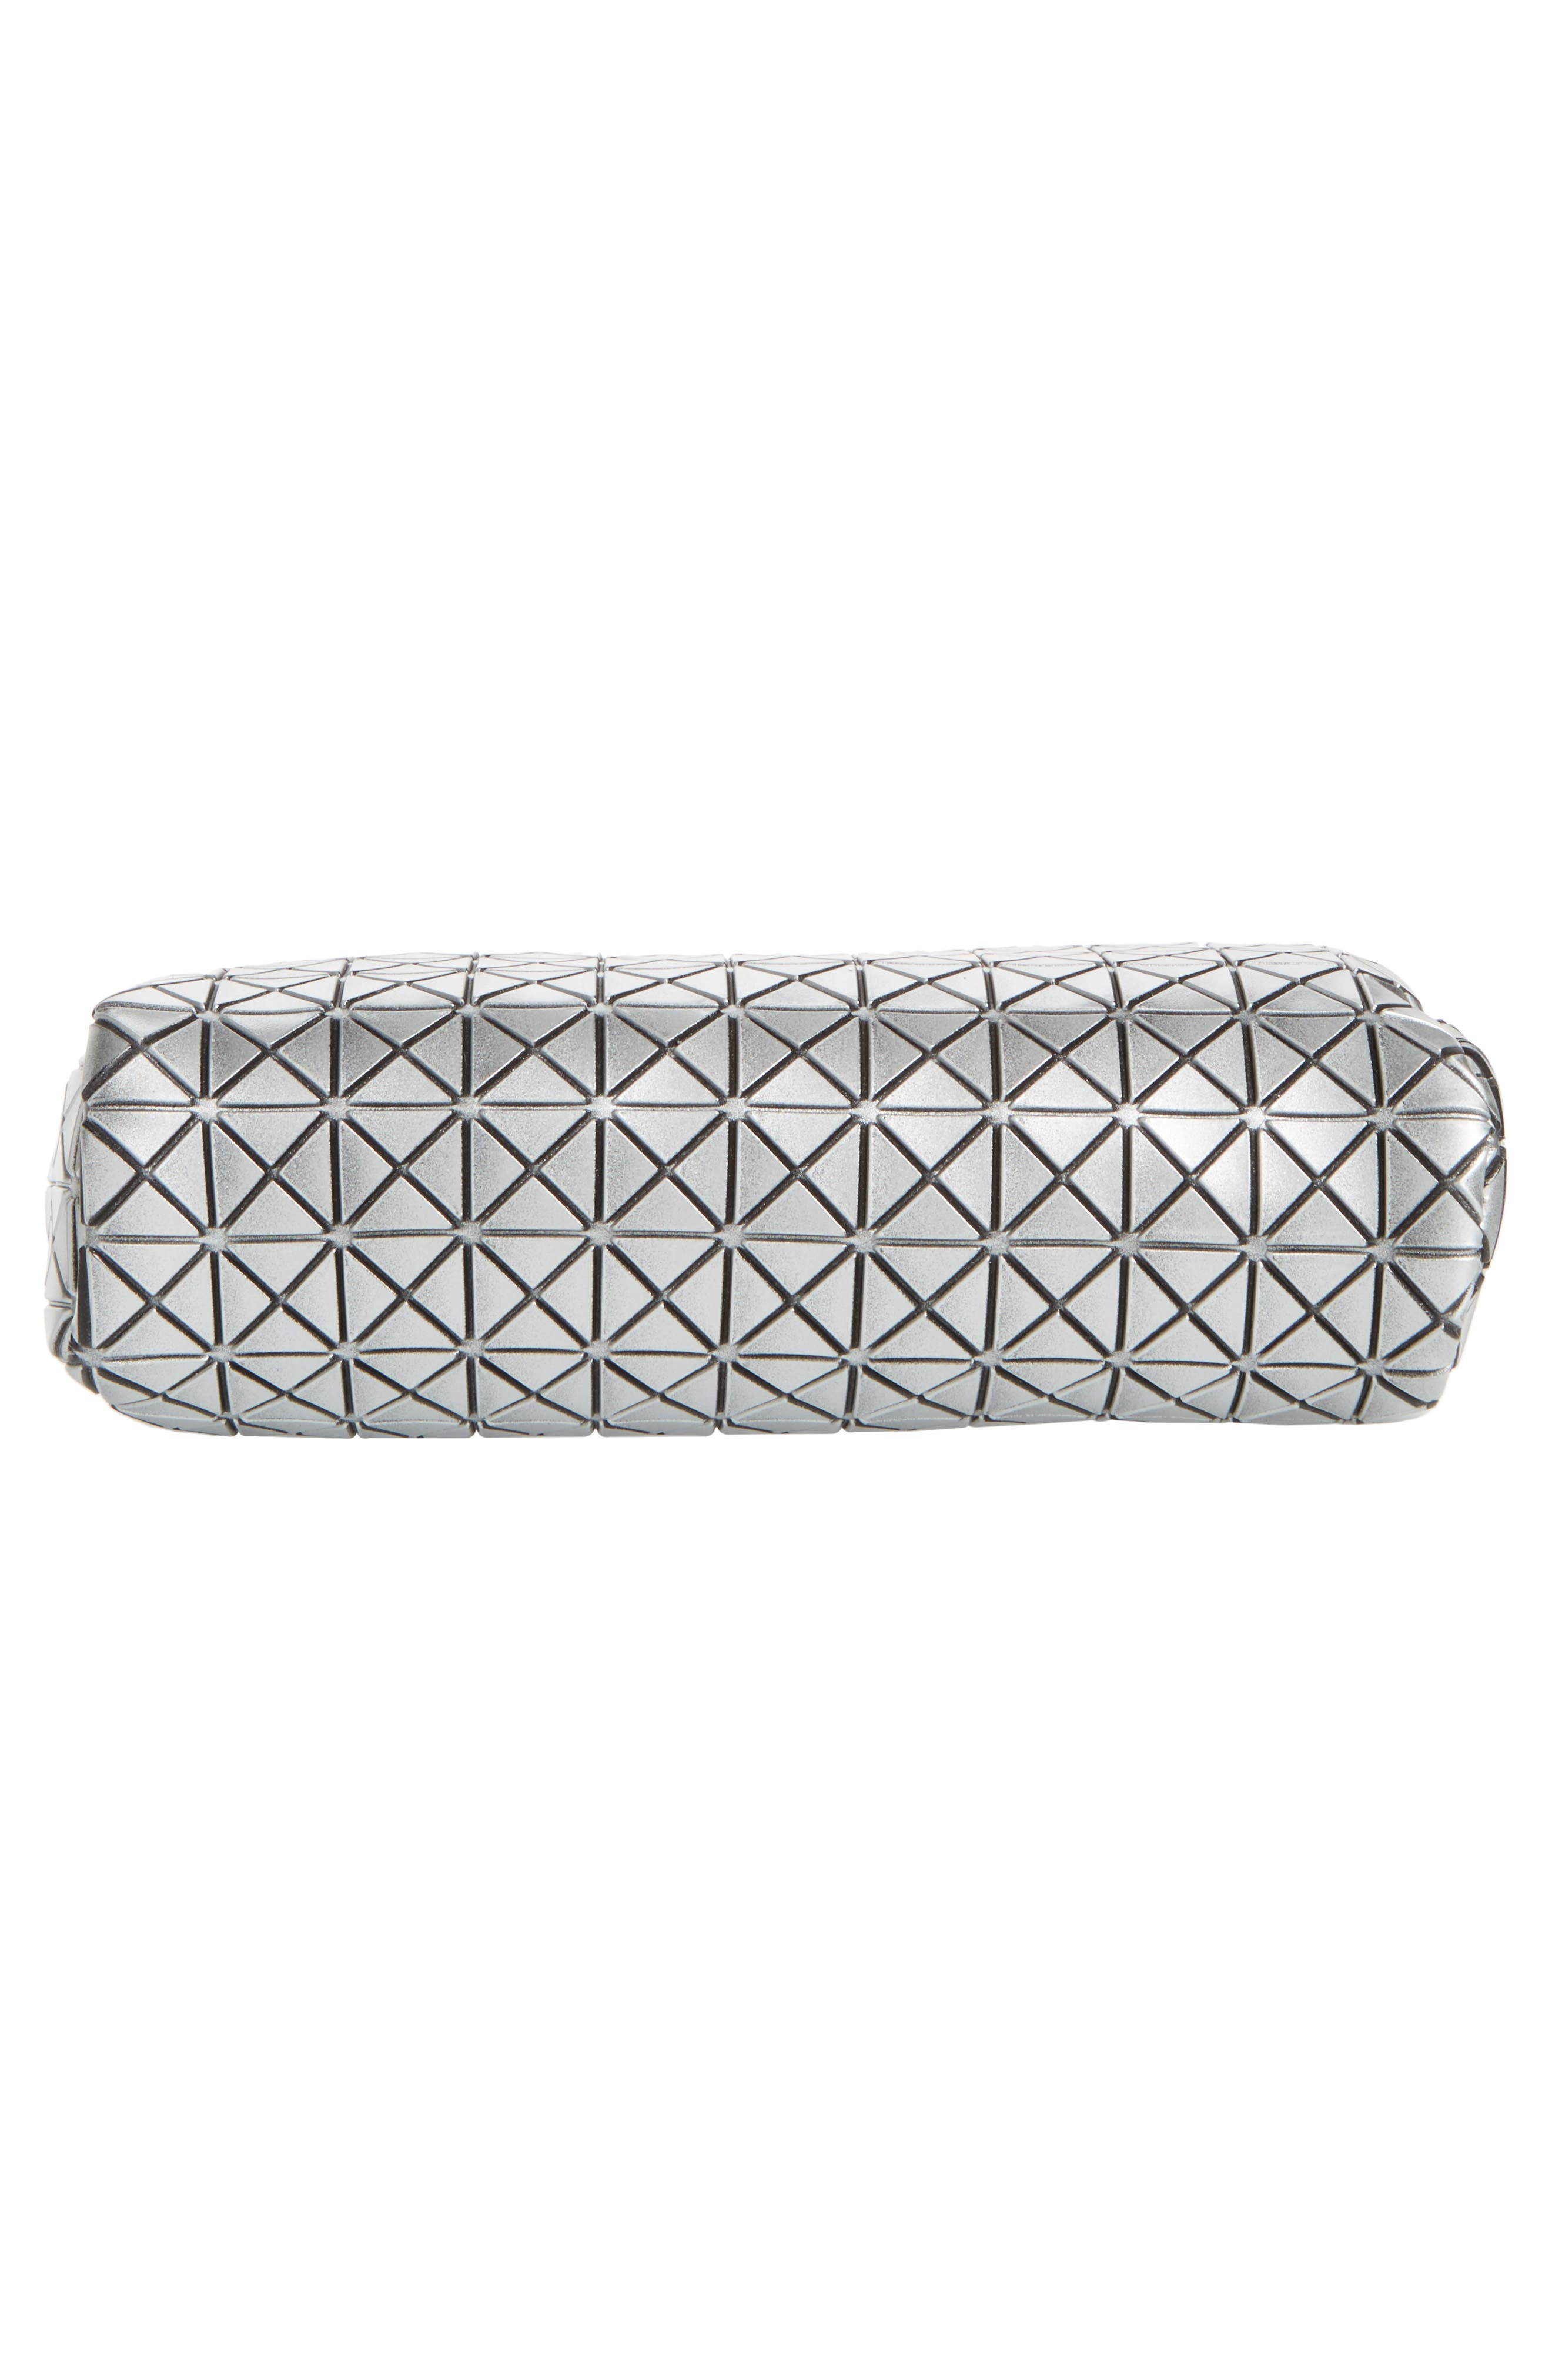 Diamond Embossed Cosmetics Bag,                             Alternate thumbnail 5, color,                             Silver